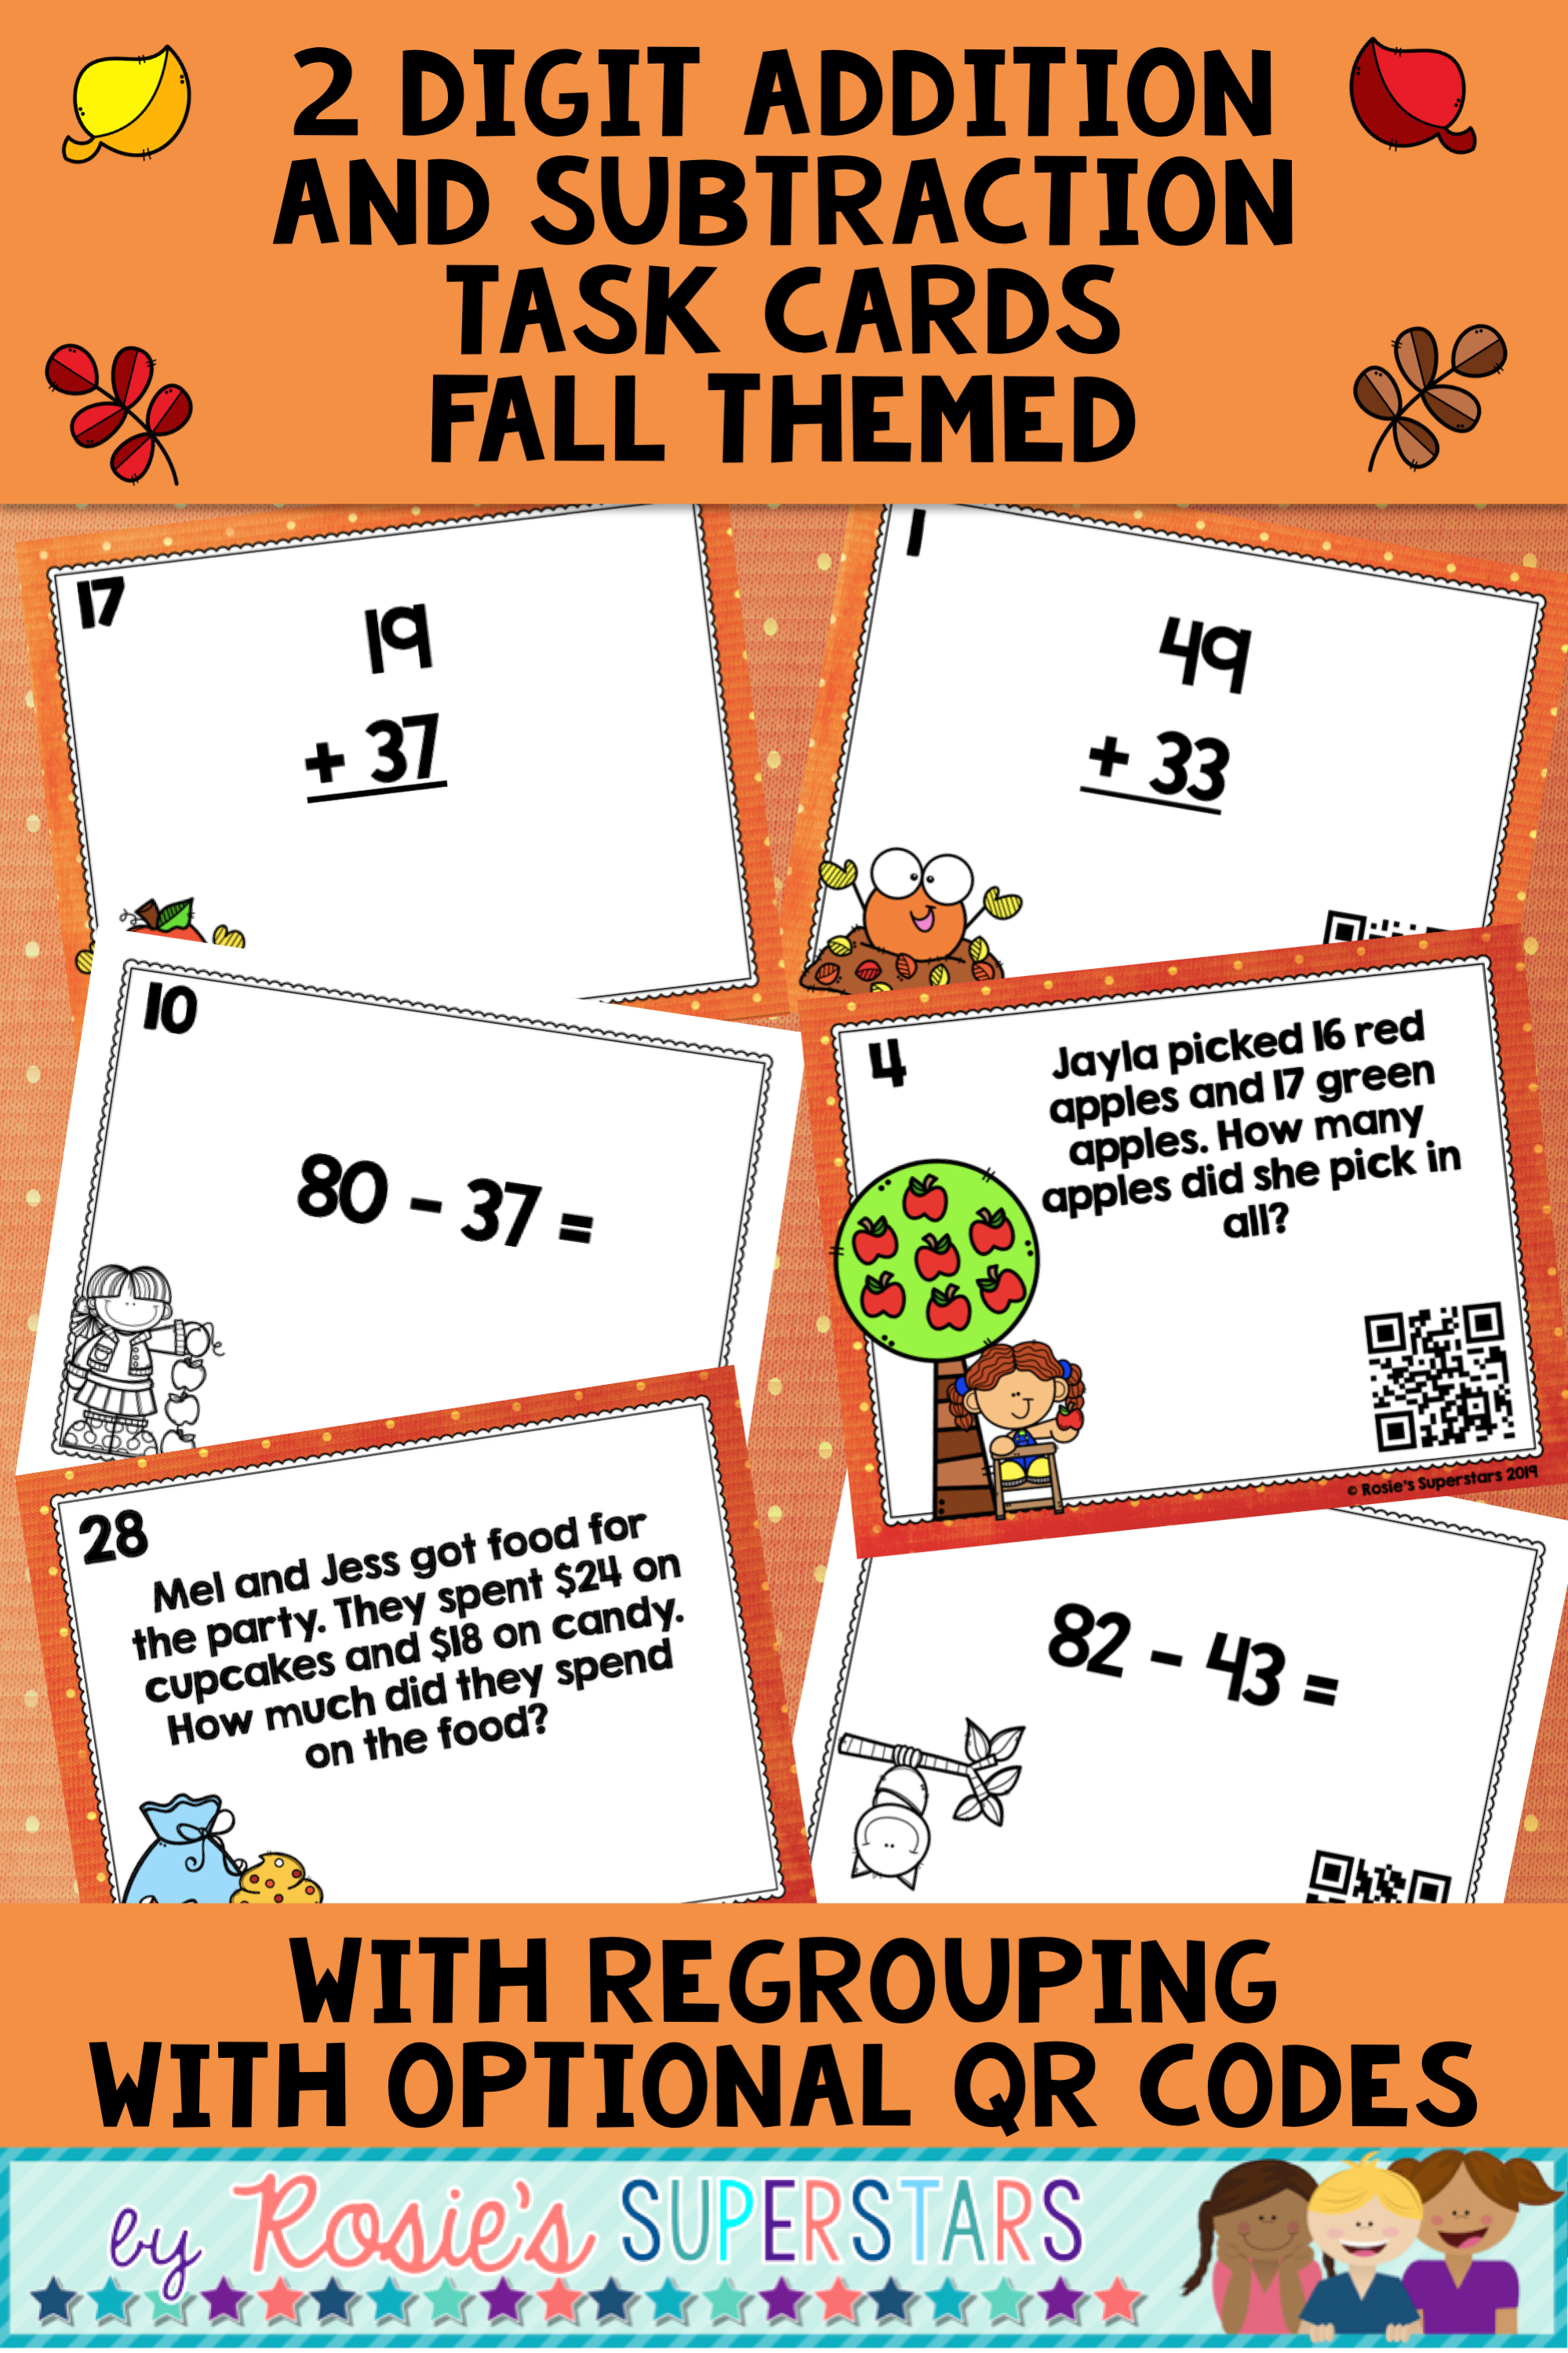 Fall 2 Digit Addition And Subtraction With Regrouping Task